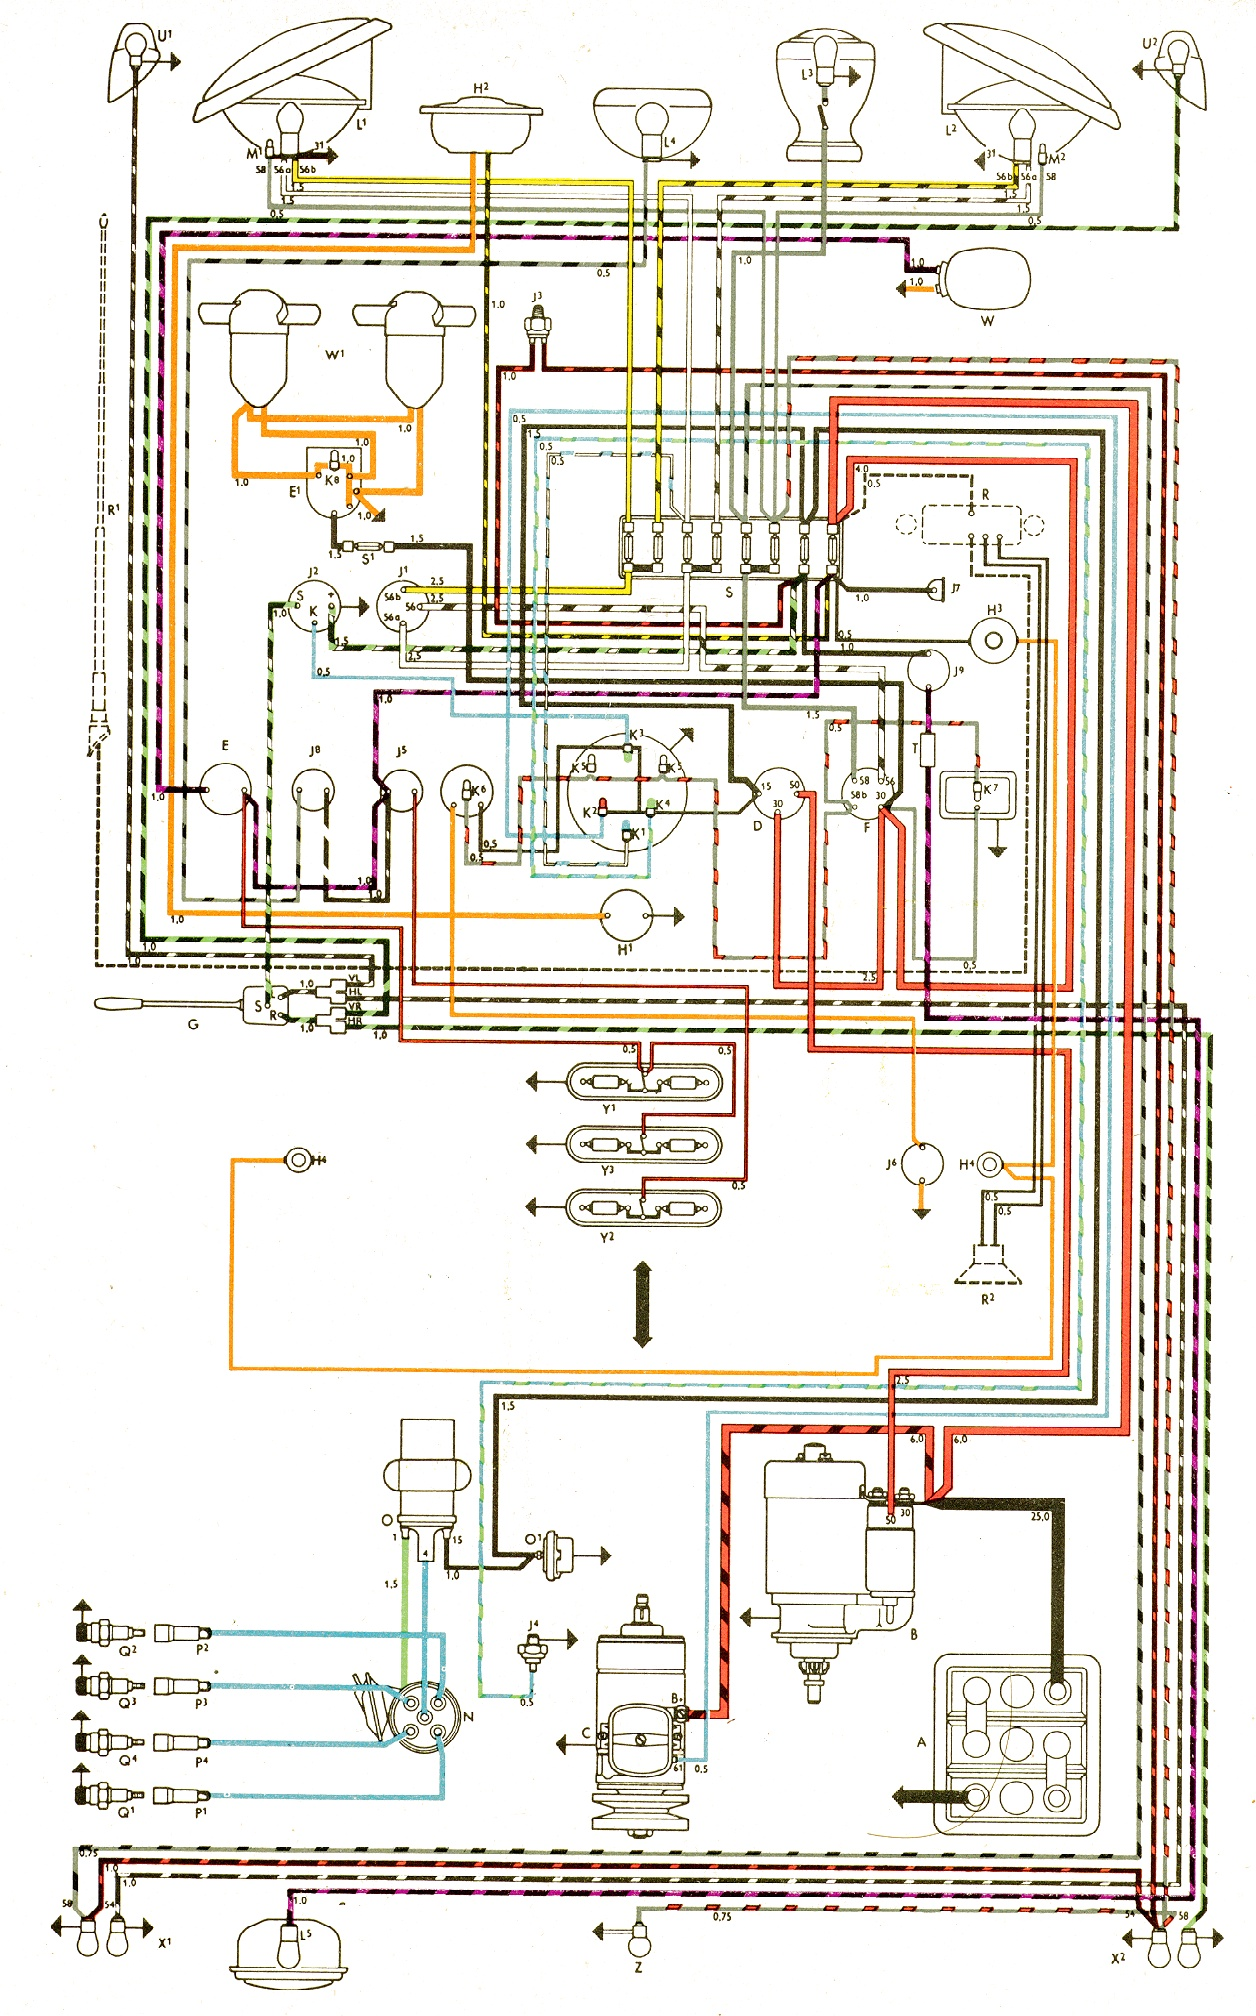 vw bug wiring diagram image wiring diagram 1967 vw bus wiring harness jodebal com on 1967 vw bug wiring diagram